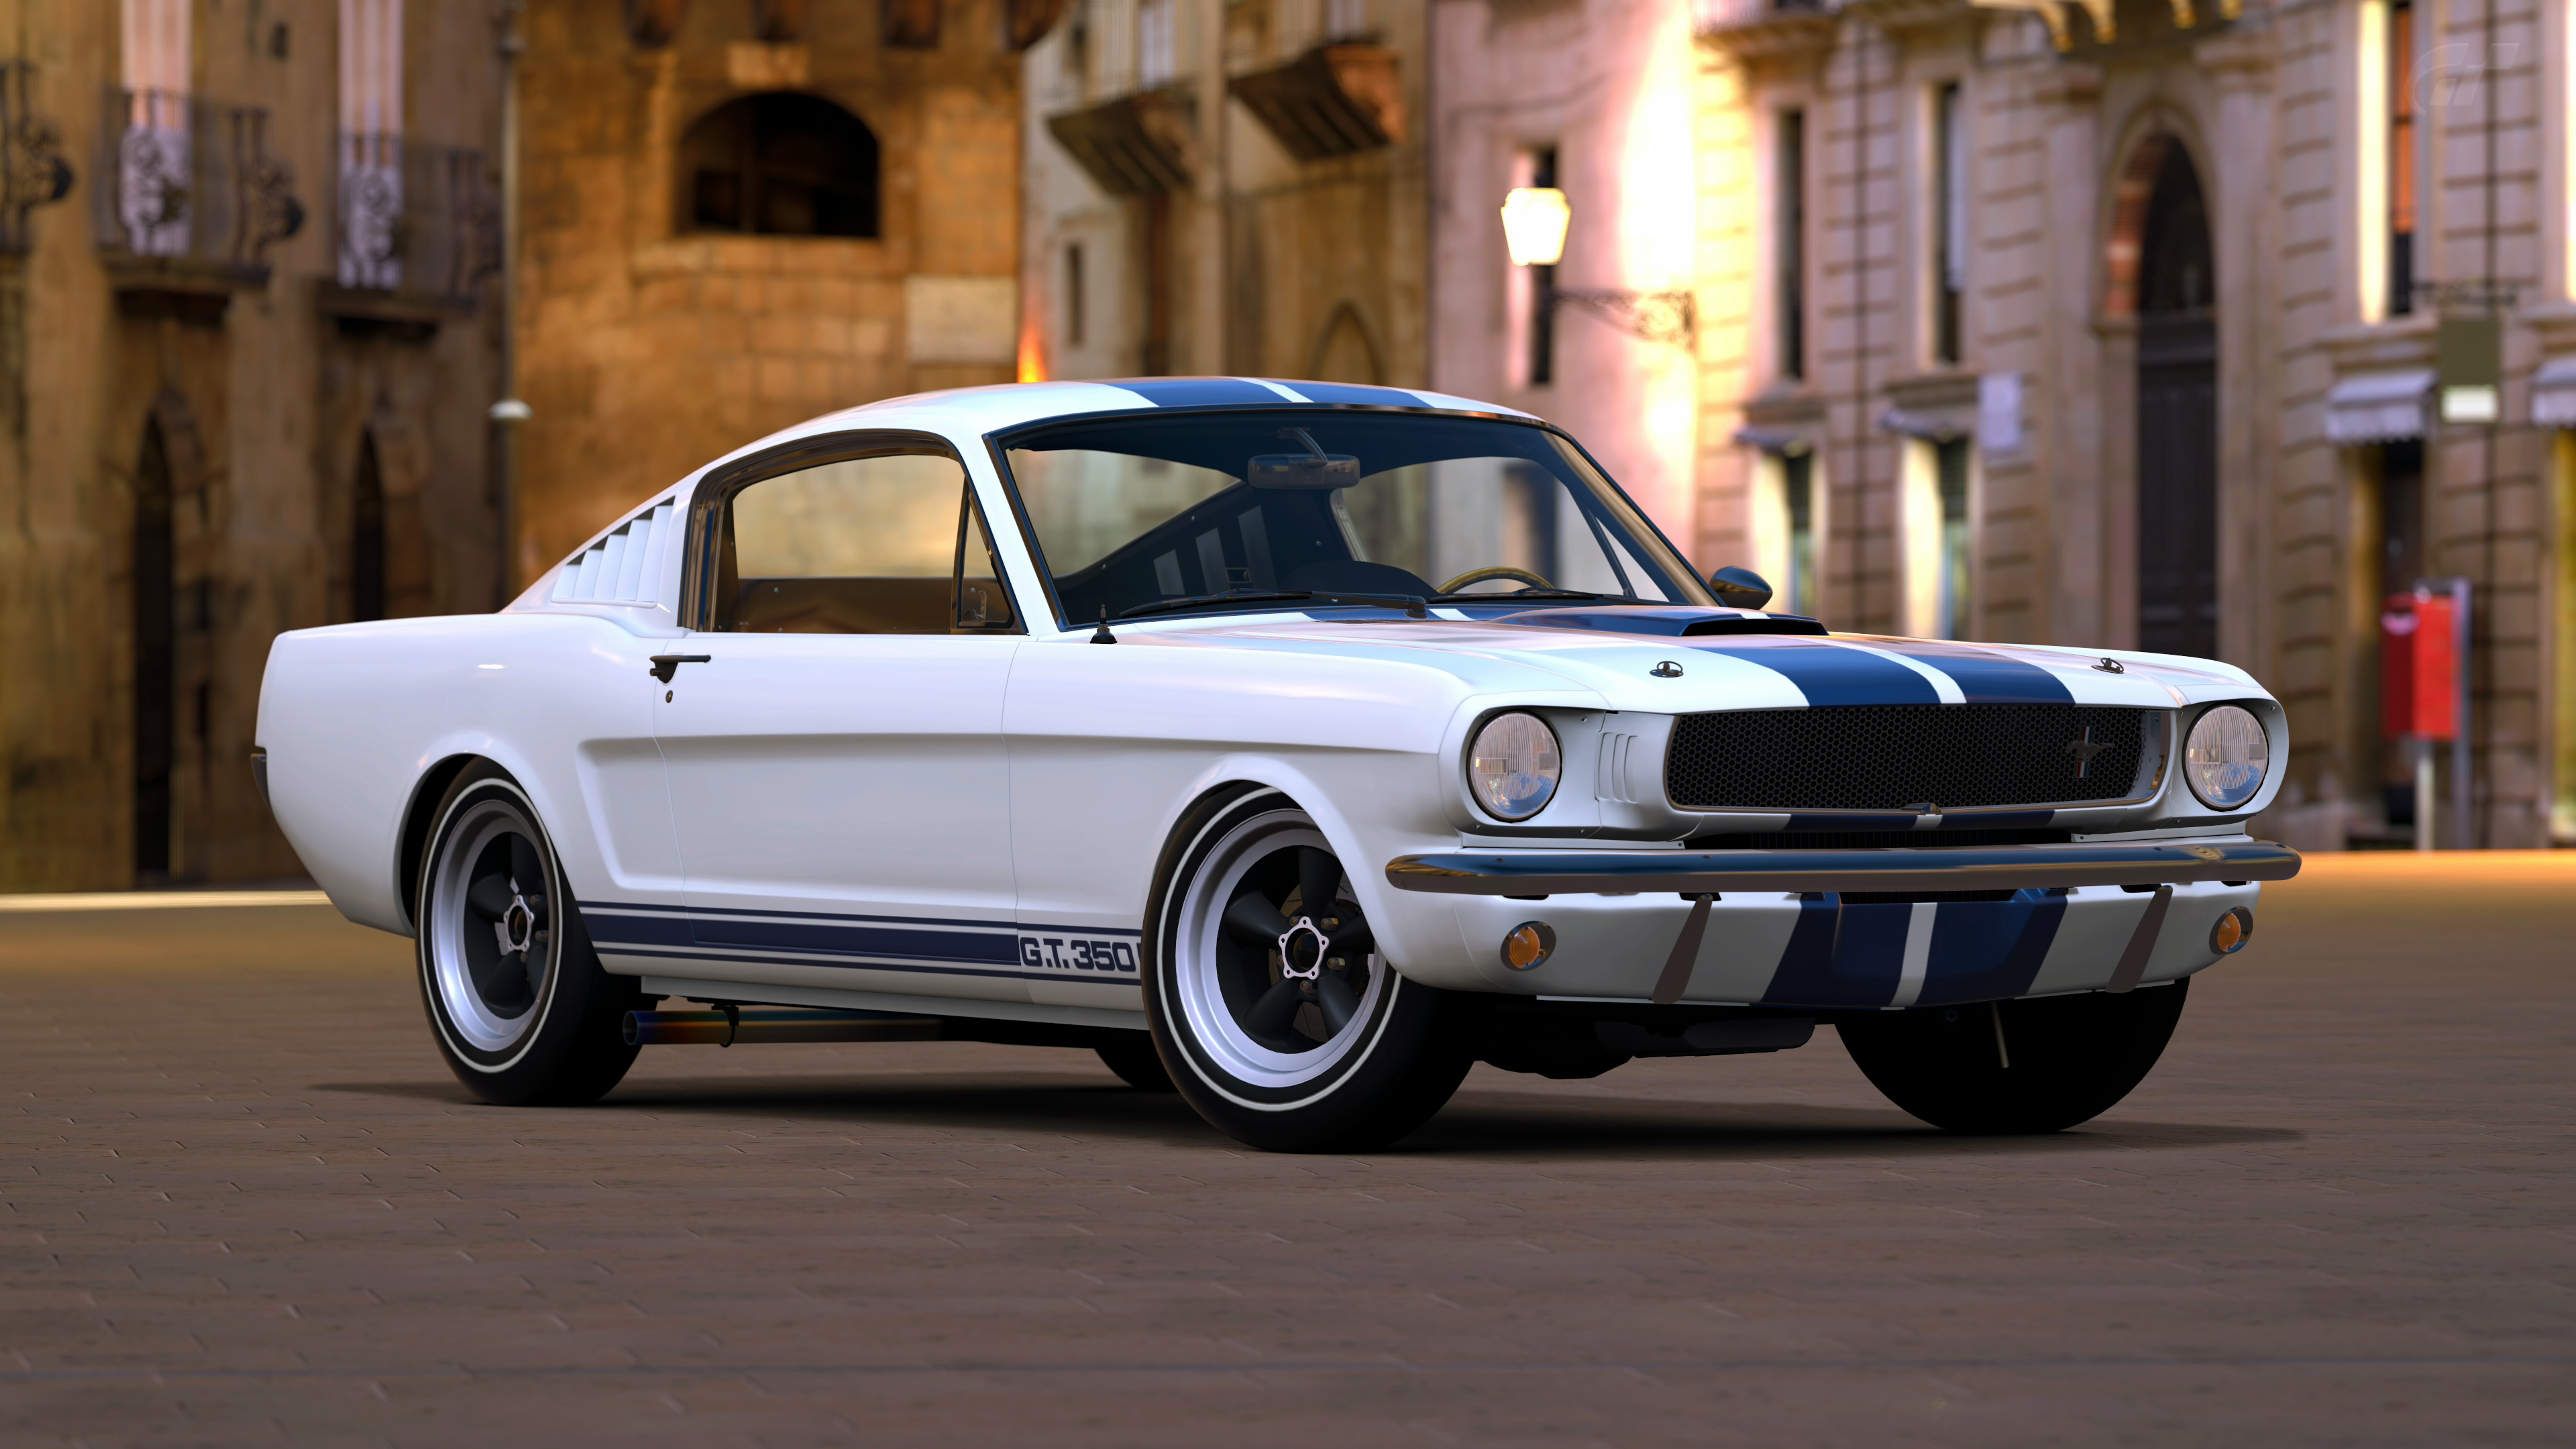 1965 shelby mustang gt350 4k ultra hd wallpaper background image 3840x2160 id931234 wallpaper abyss